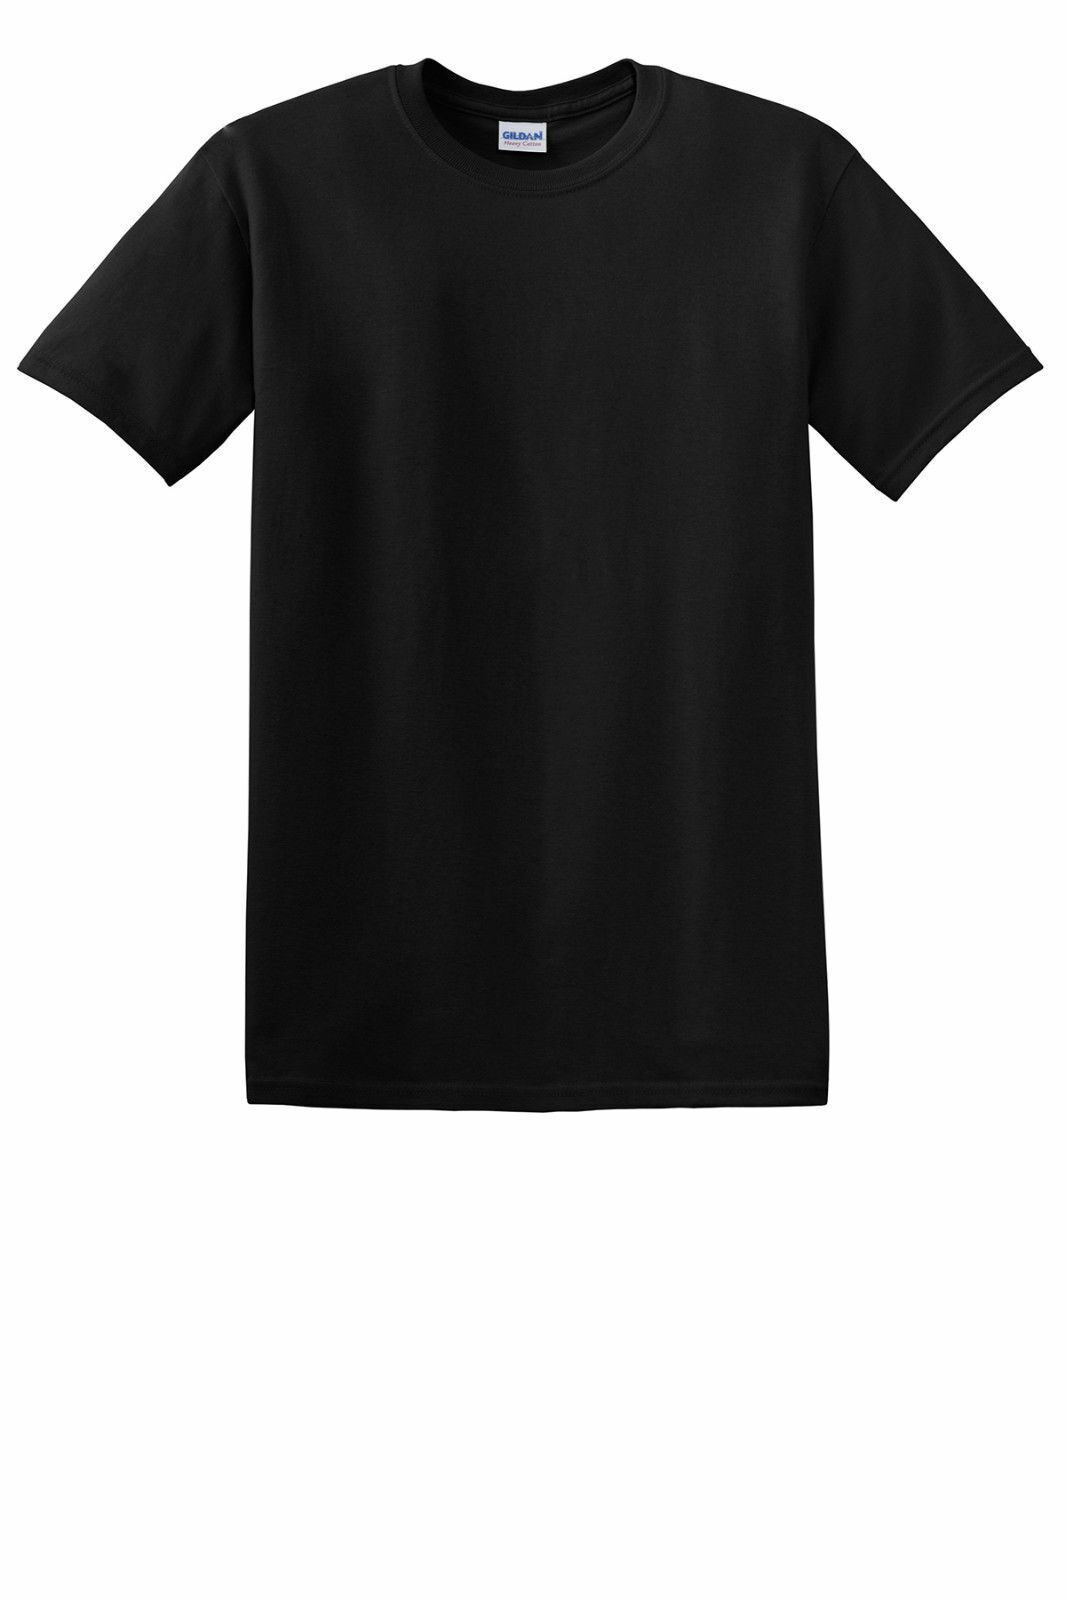 2 NEW IN THE BAG GILDAN HEAVY COTTON MENS SHORT SLEEVE T SHIRTS WHITE OR BLACK Clothing, Shoes & Accessories